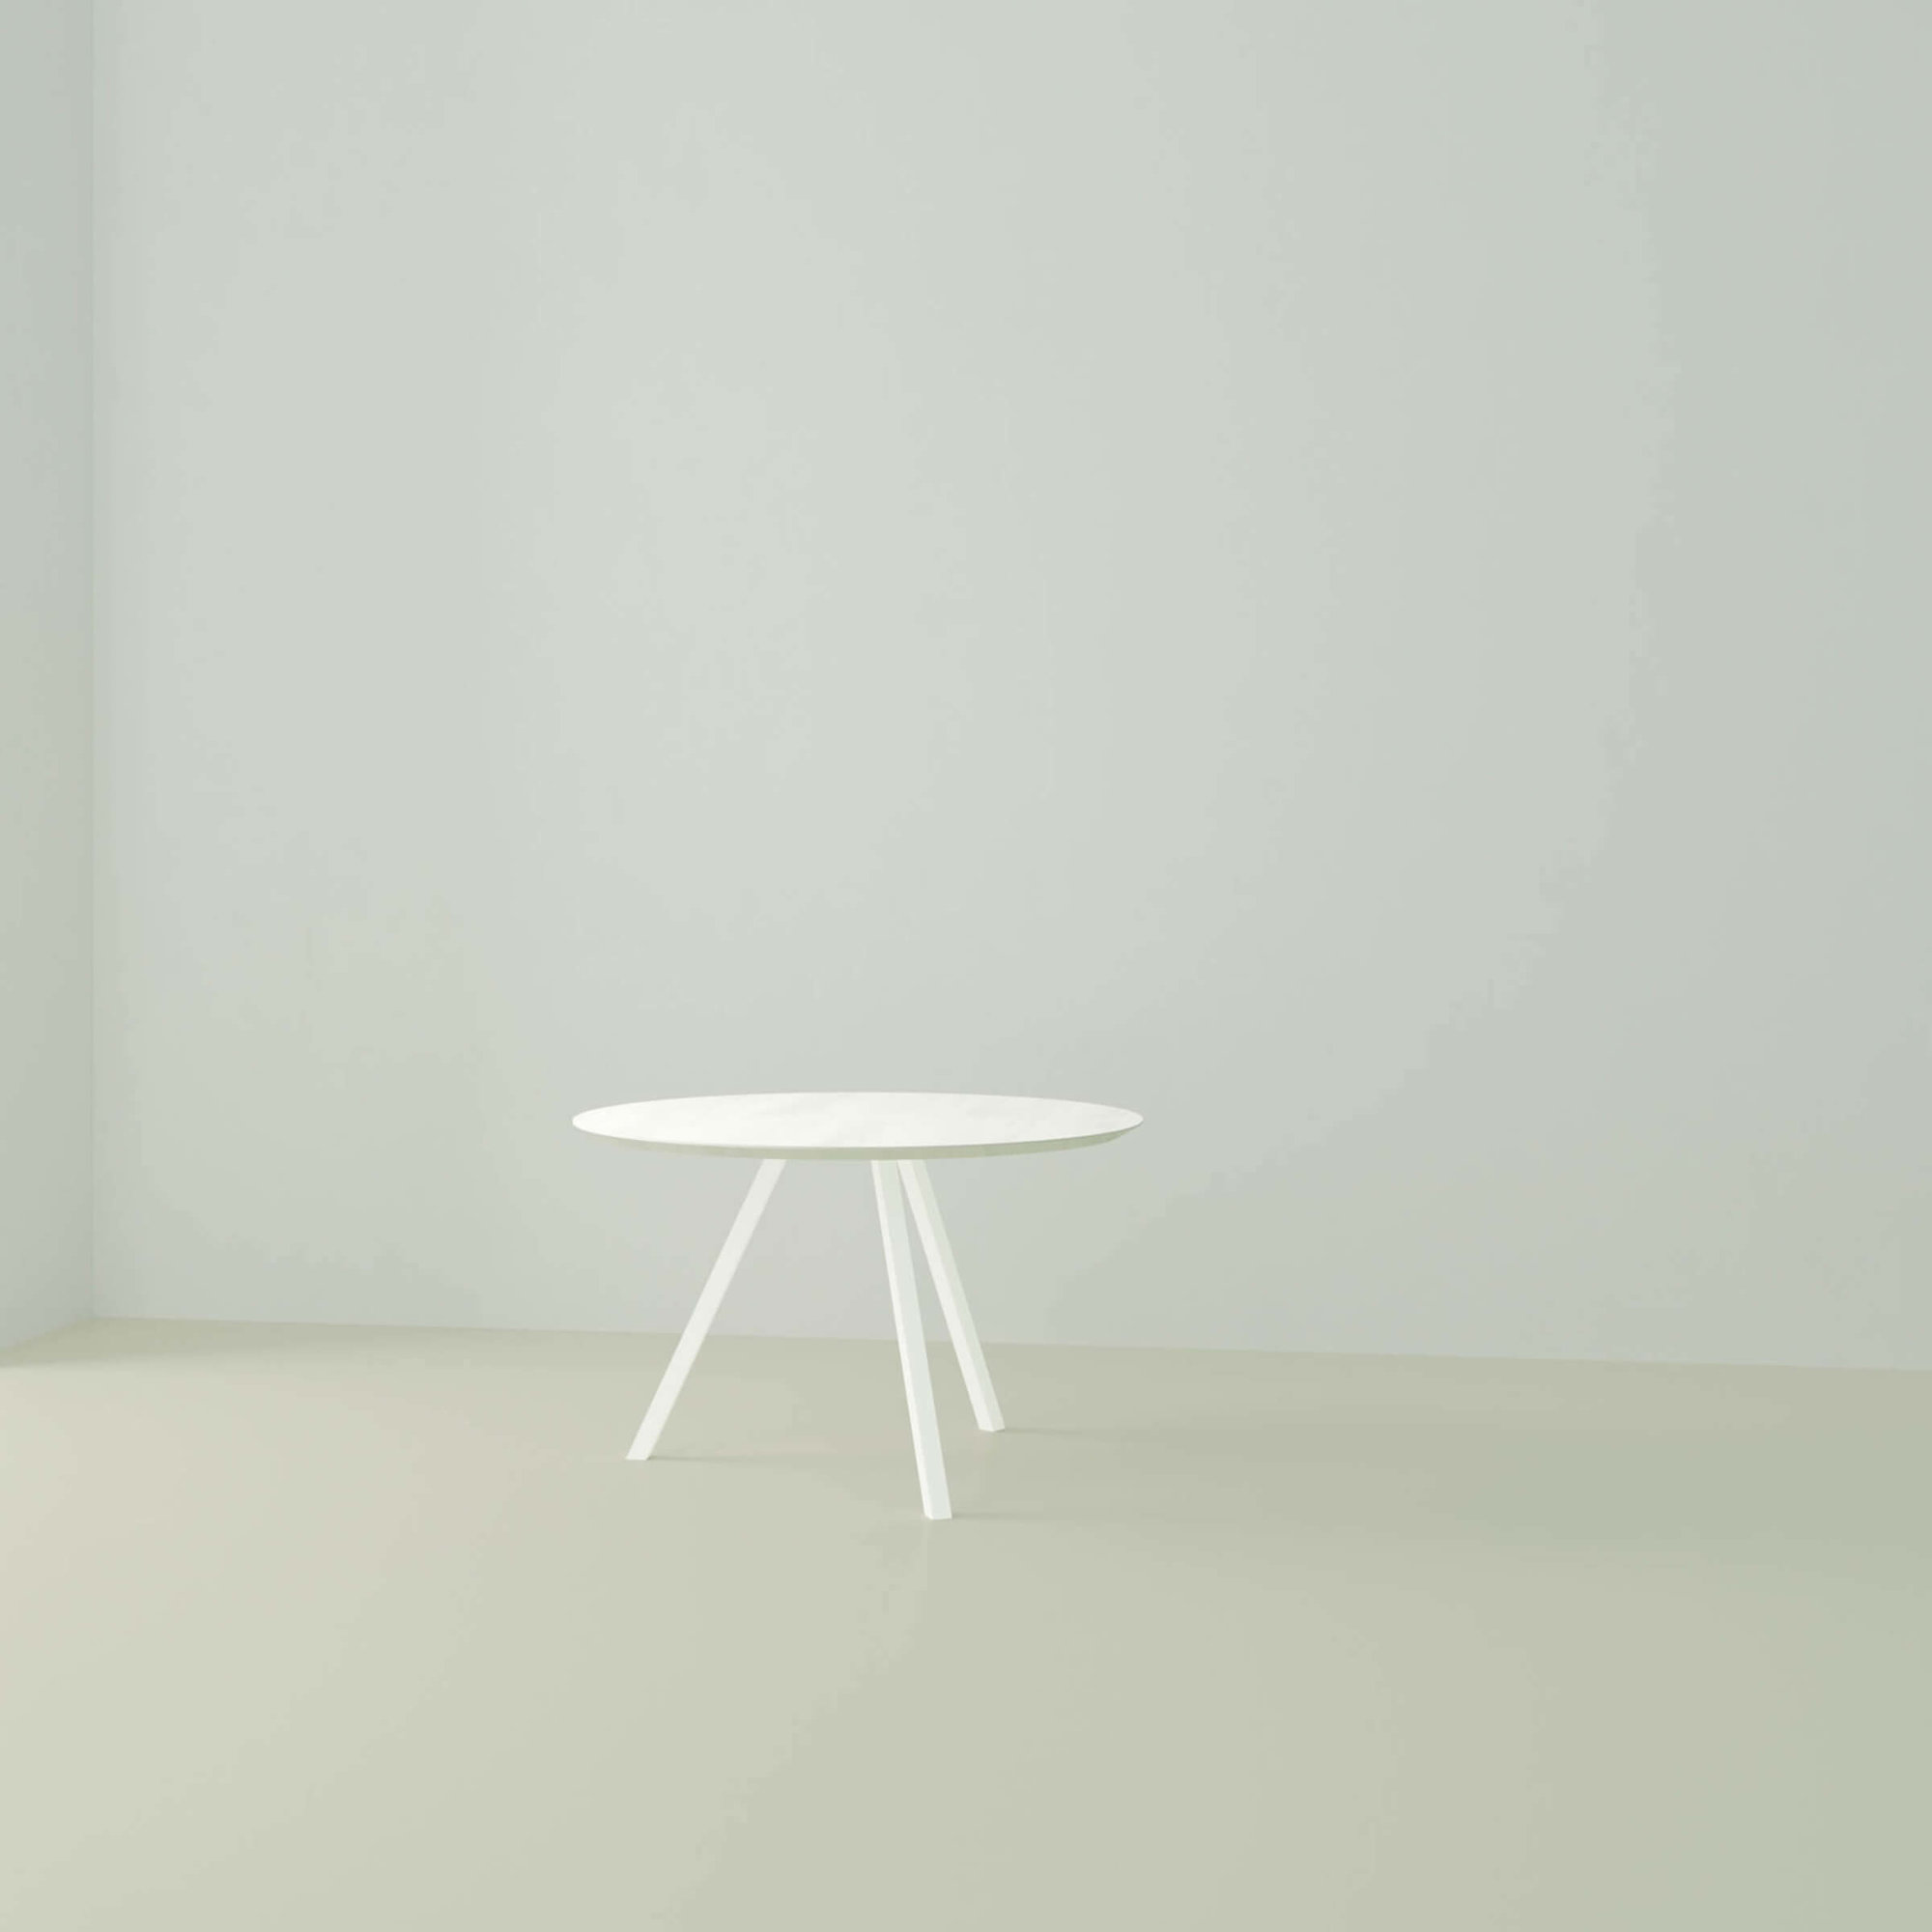 Ronde design tafel op maat | New Classic Tripod Steel white powdercoating | Oak white lacquer | Studio HENK | Listing_image_2